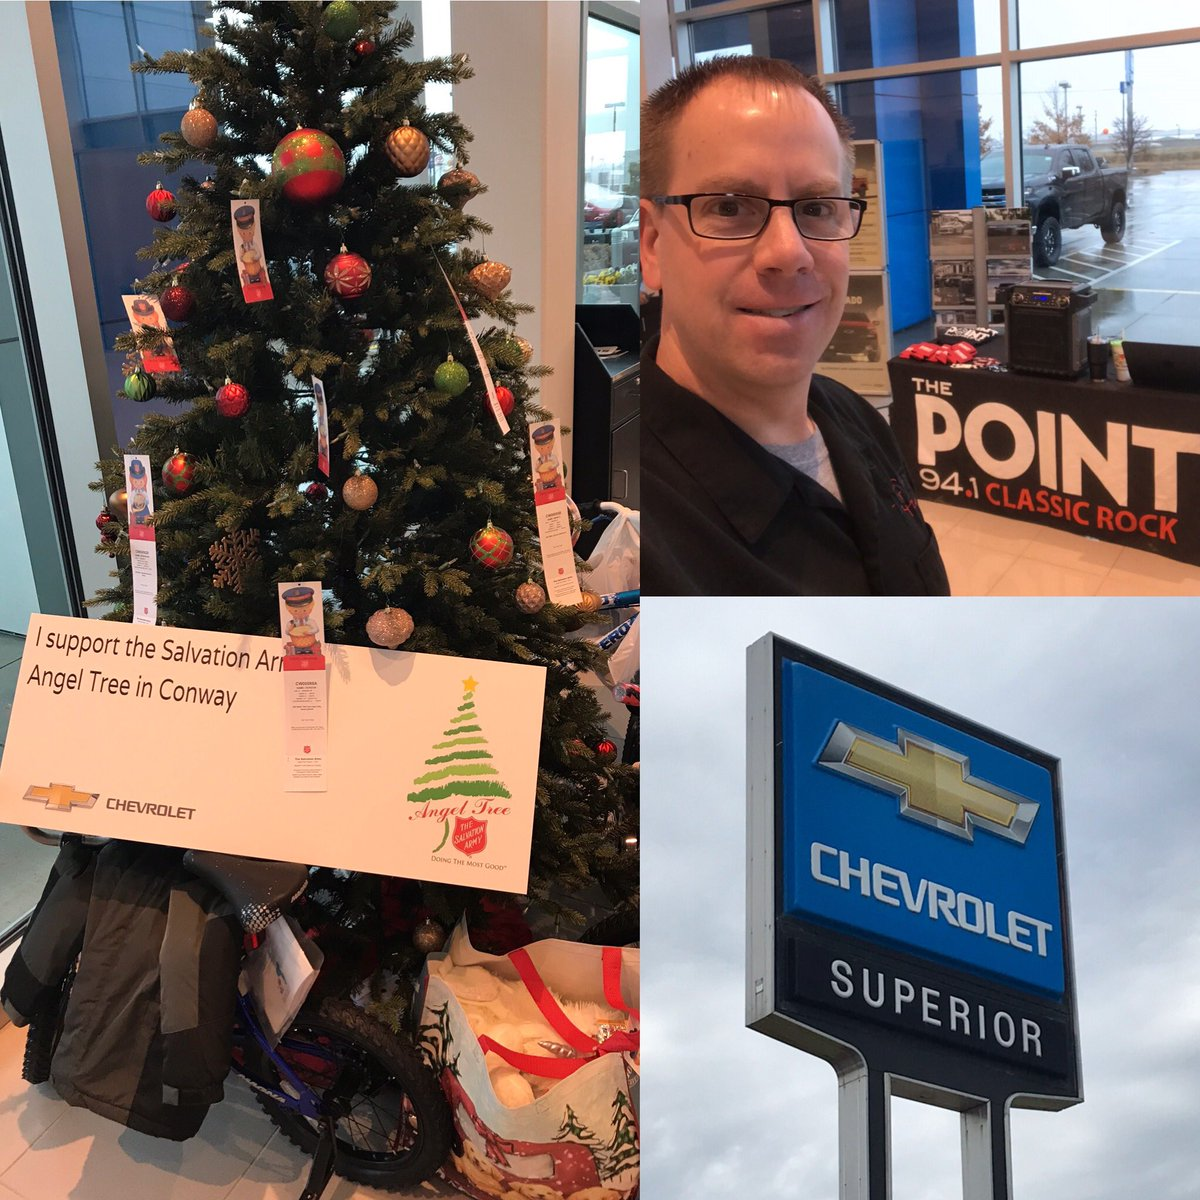 The Point 94 1 A Twitter Collecting Toys For The Salvation Army Angel Tree We Re At Superior Chevrolet In Conway Until 1pm Stop By And See Us Https T Co Zimefxe29b